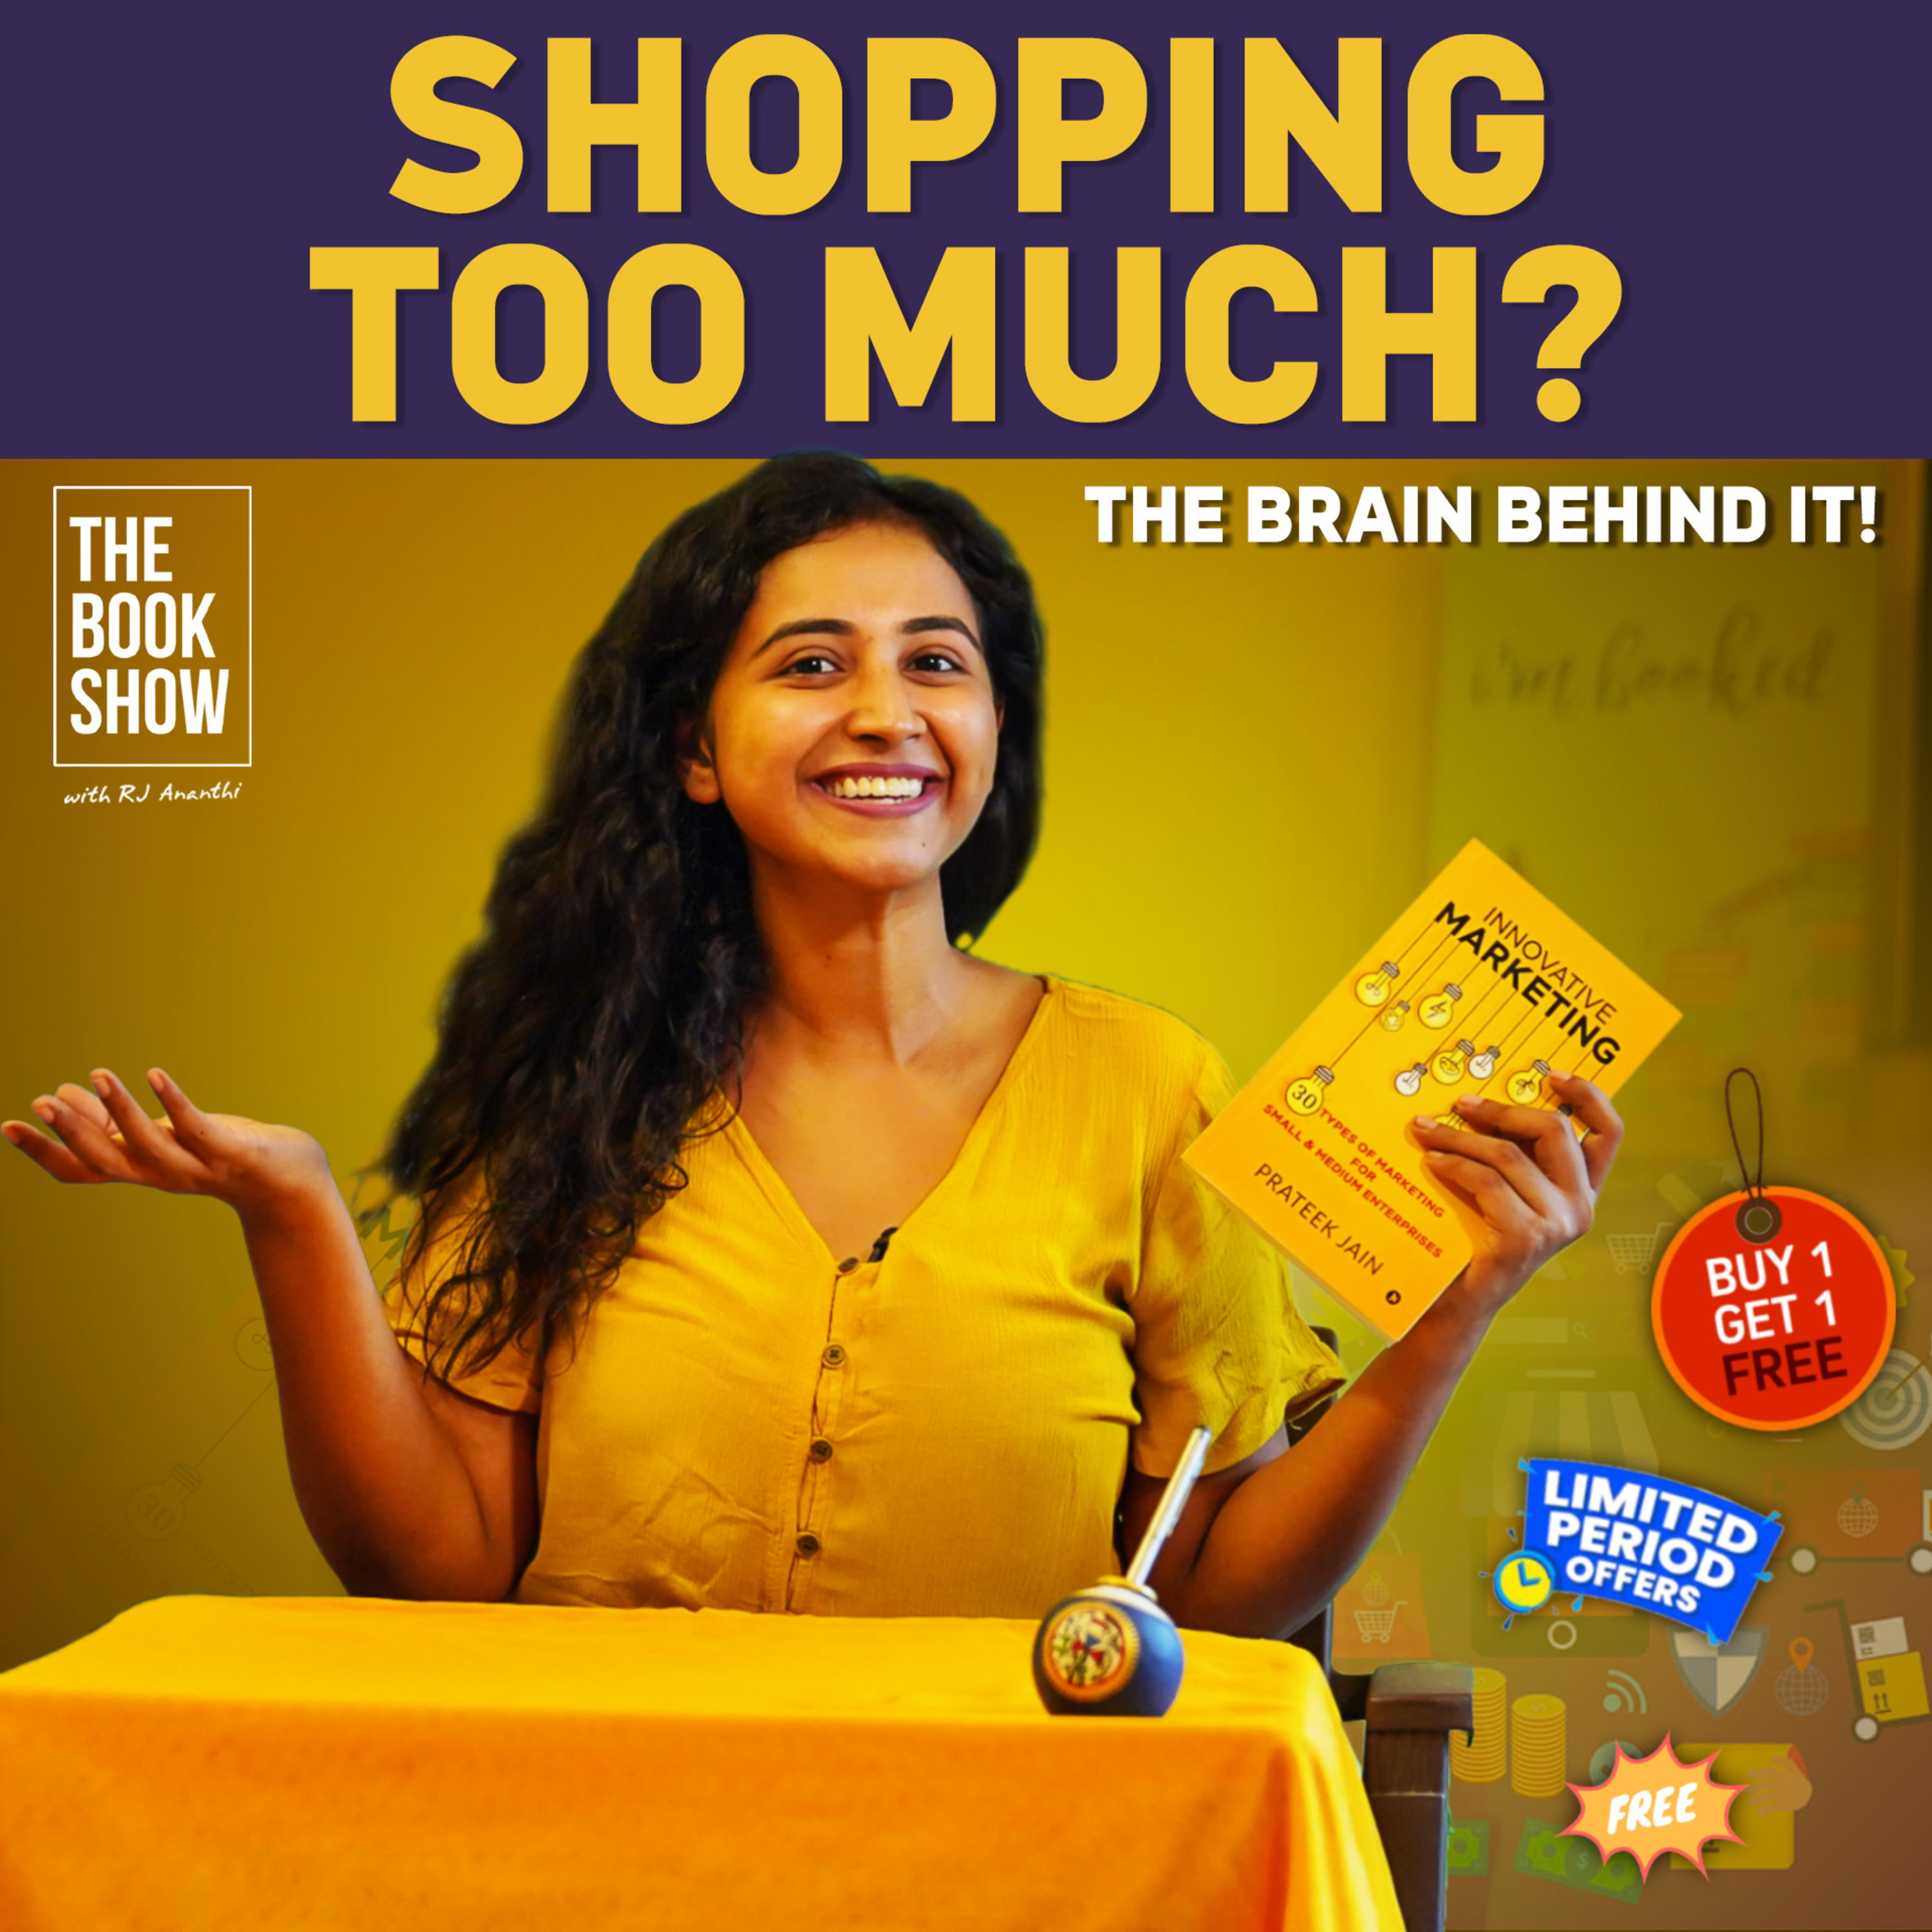 The Brain Behind Shopping Too Much   Bookmark ft. RJ Ananthi   The Book Show